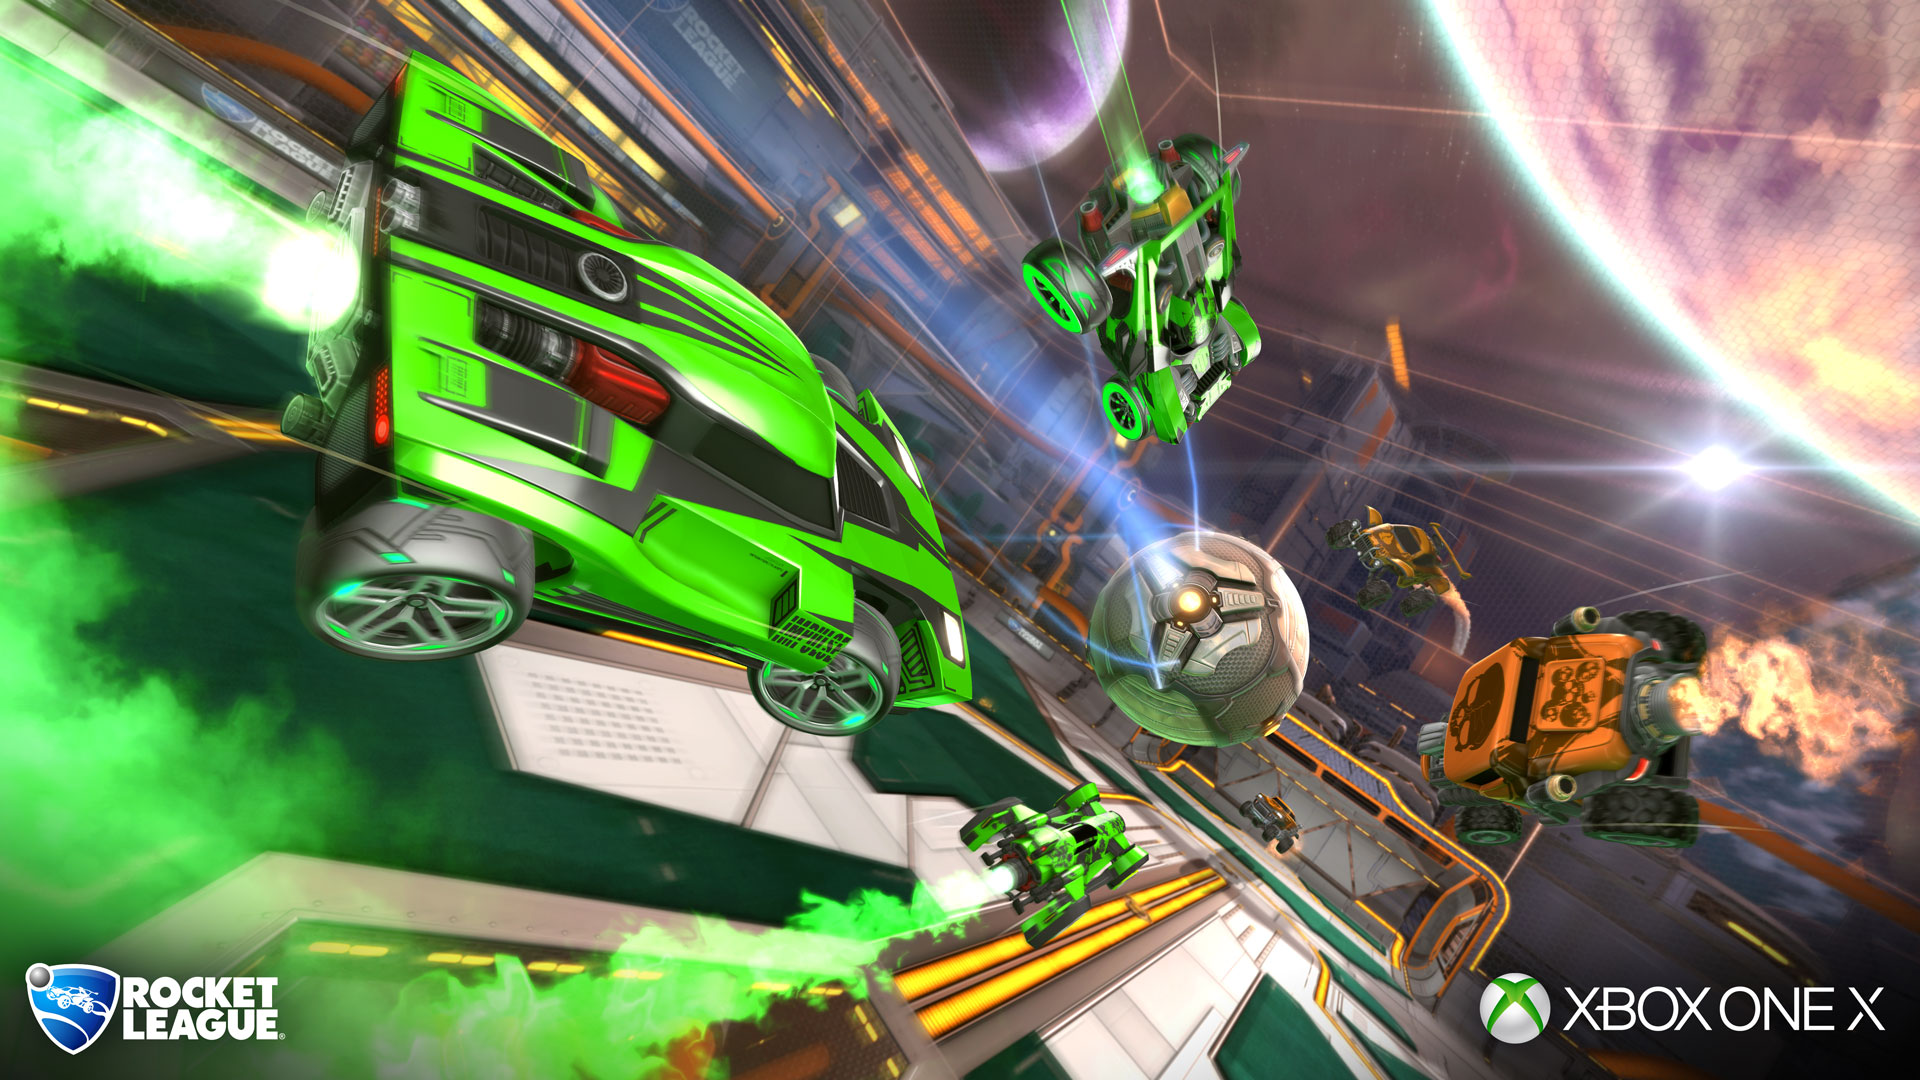 Rocket League Getting Native 4K@60 and HDR Support on Xbox One X